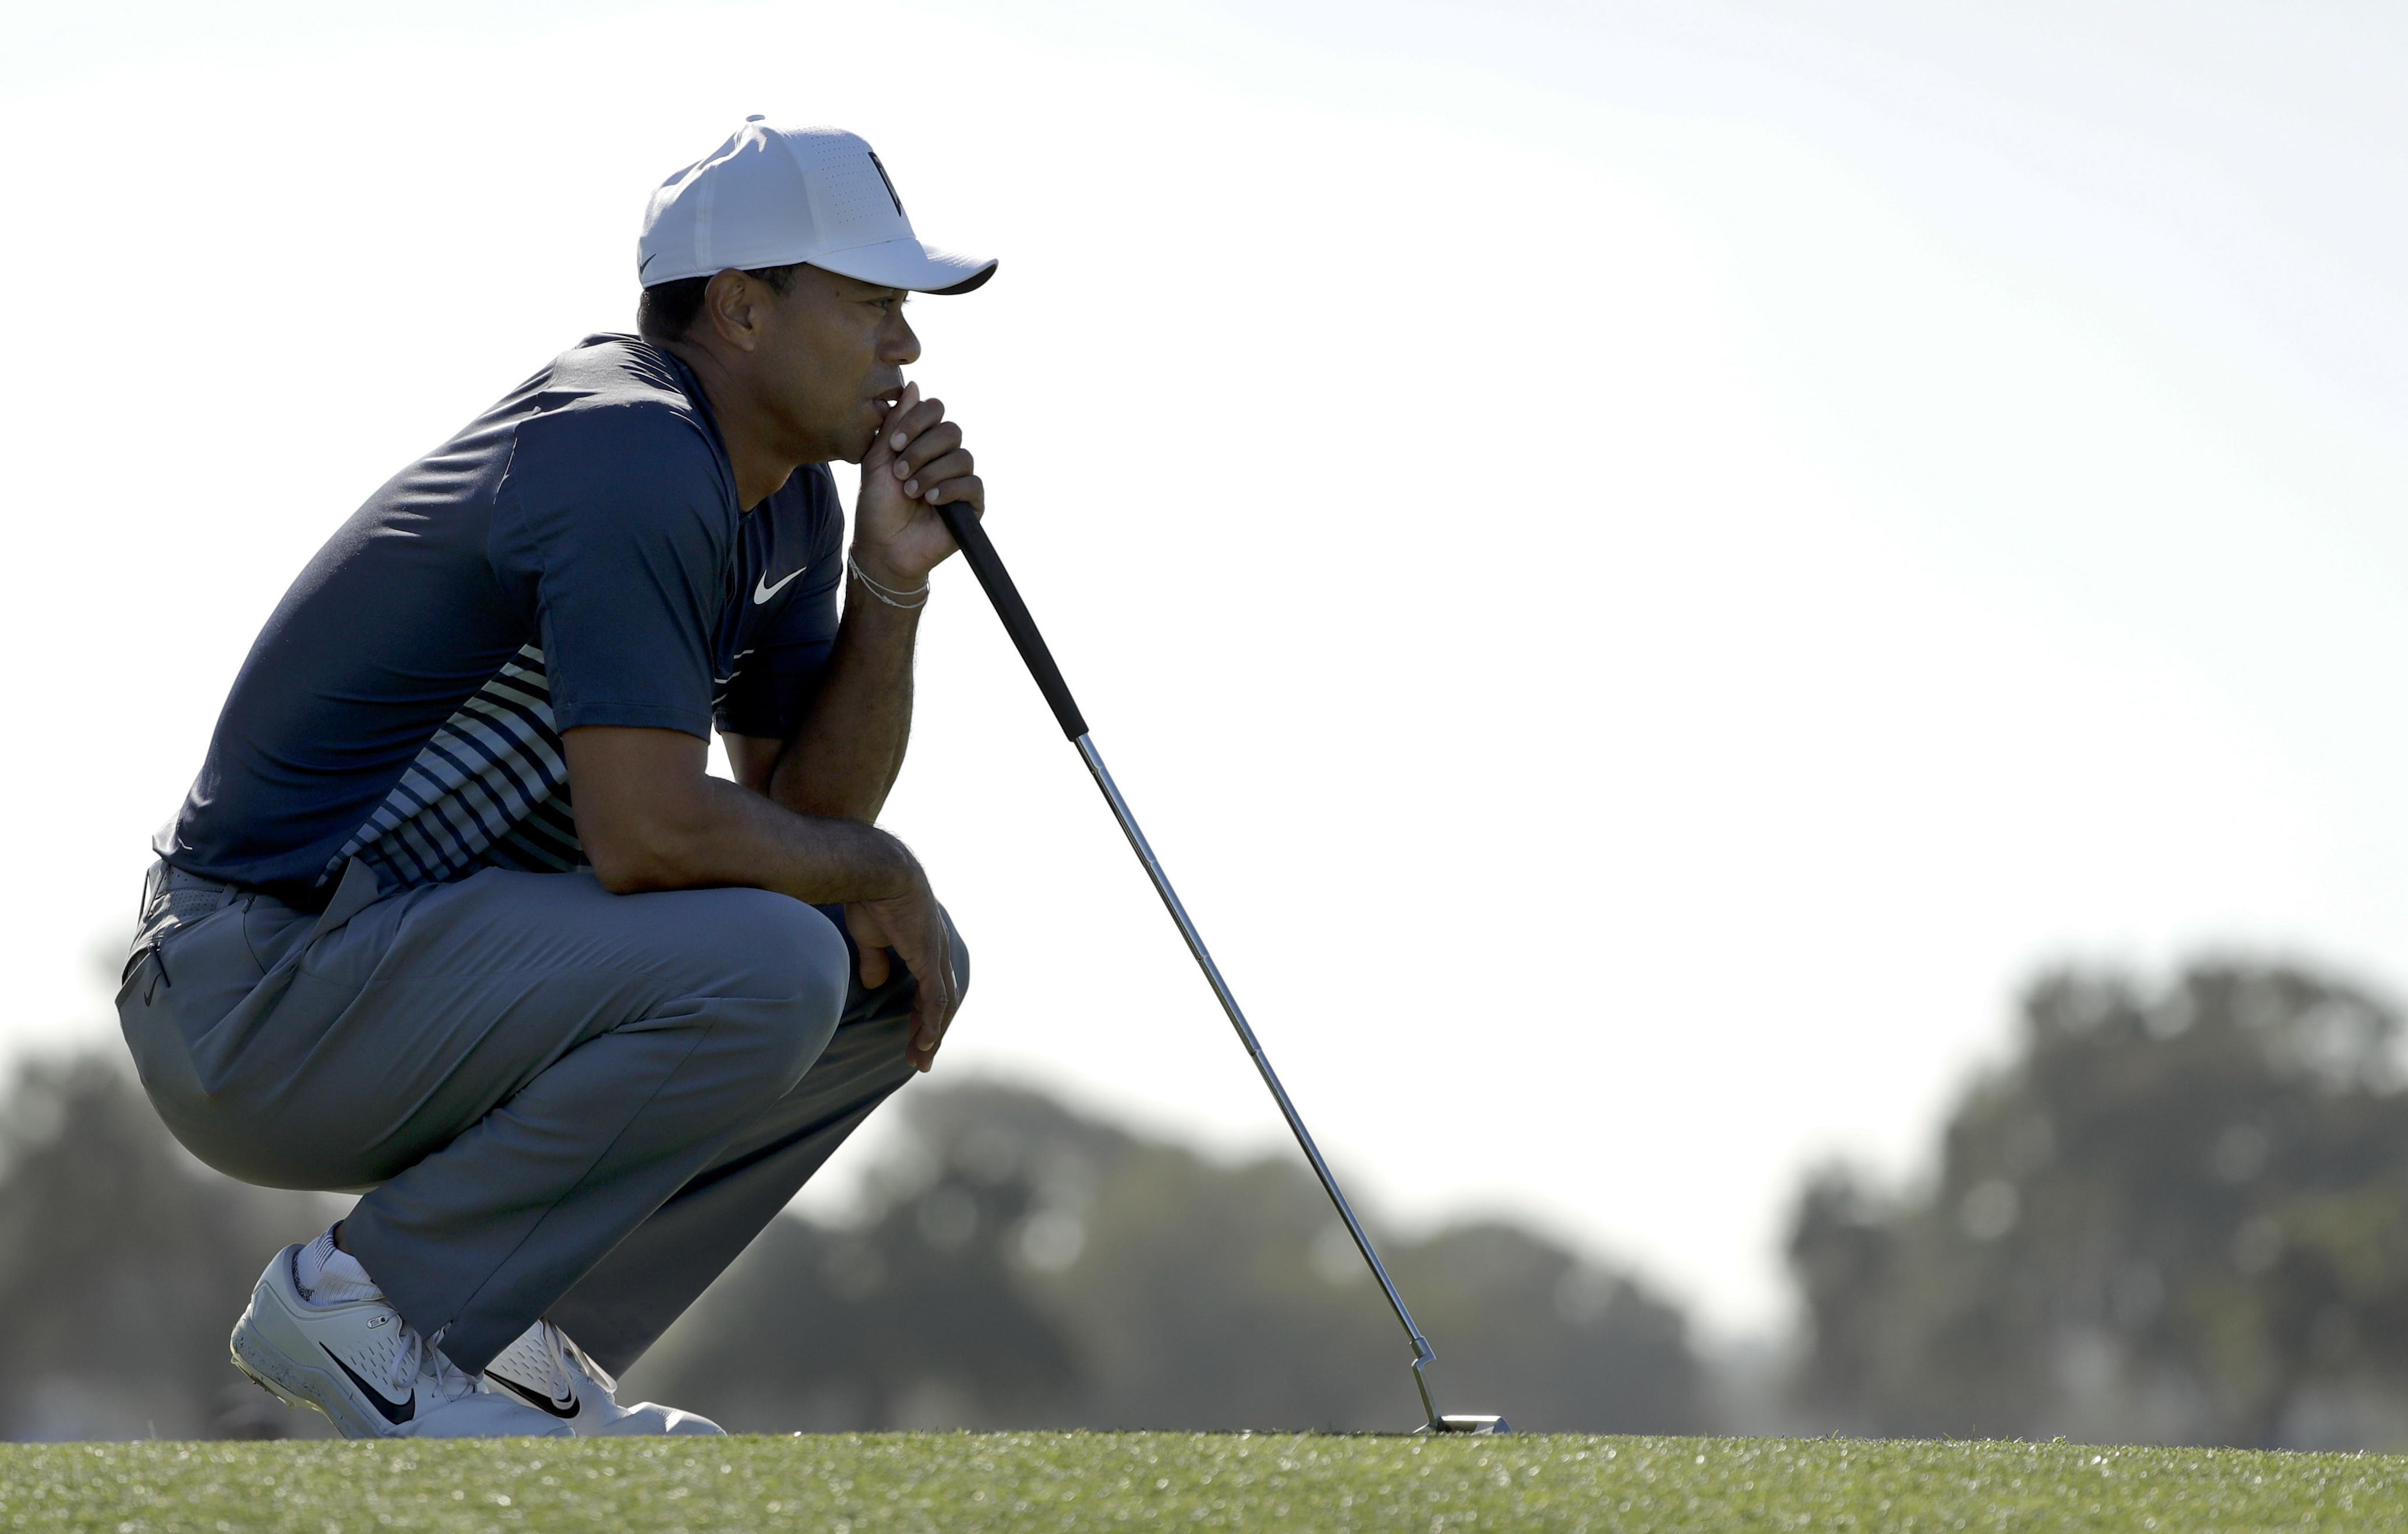 Tiger Woods sank a crucial birdie on the final hole to make the cut